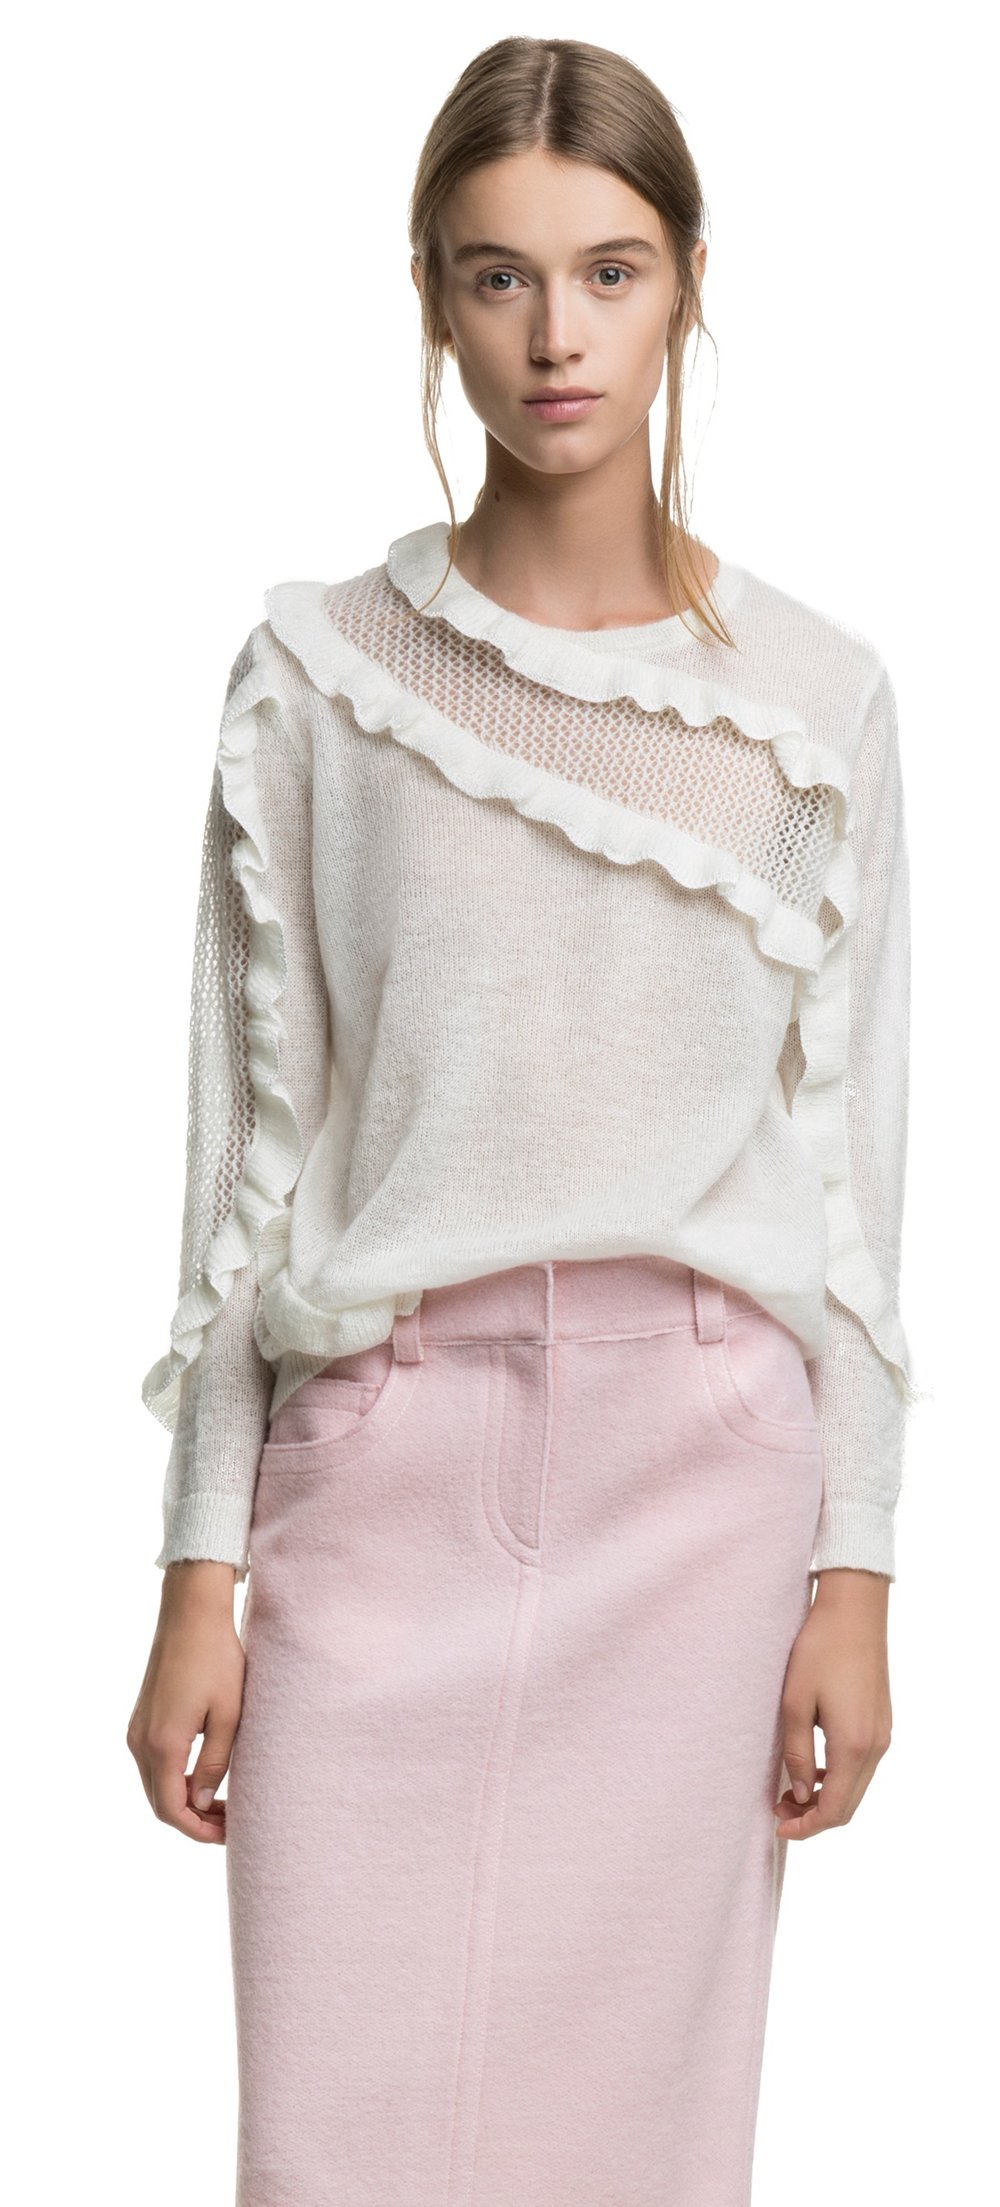 The feminine sweater, wear at night for a different impact, 73 euros